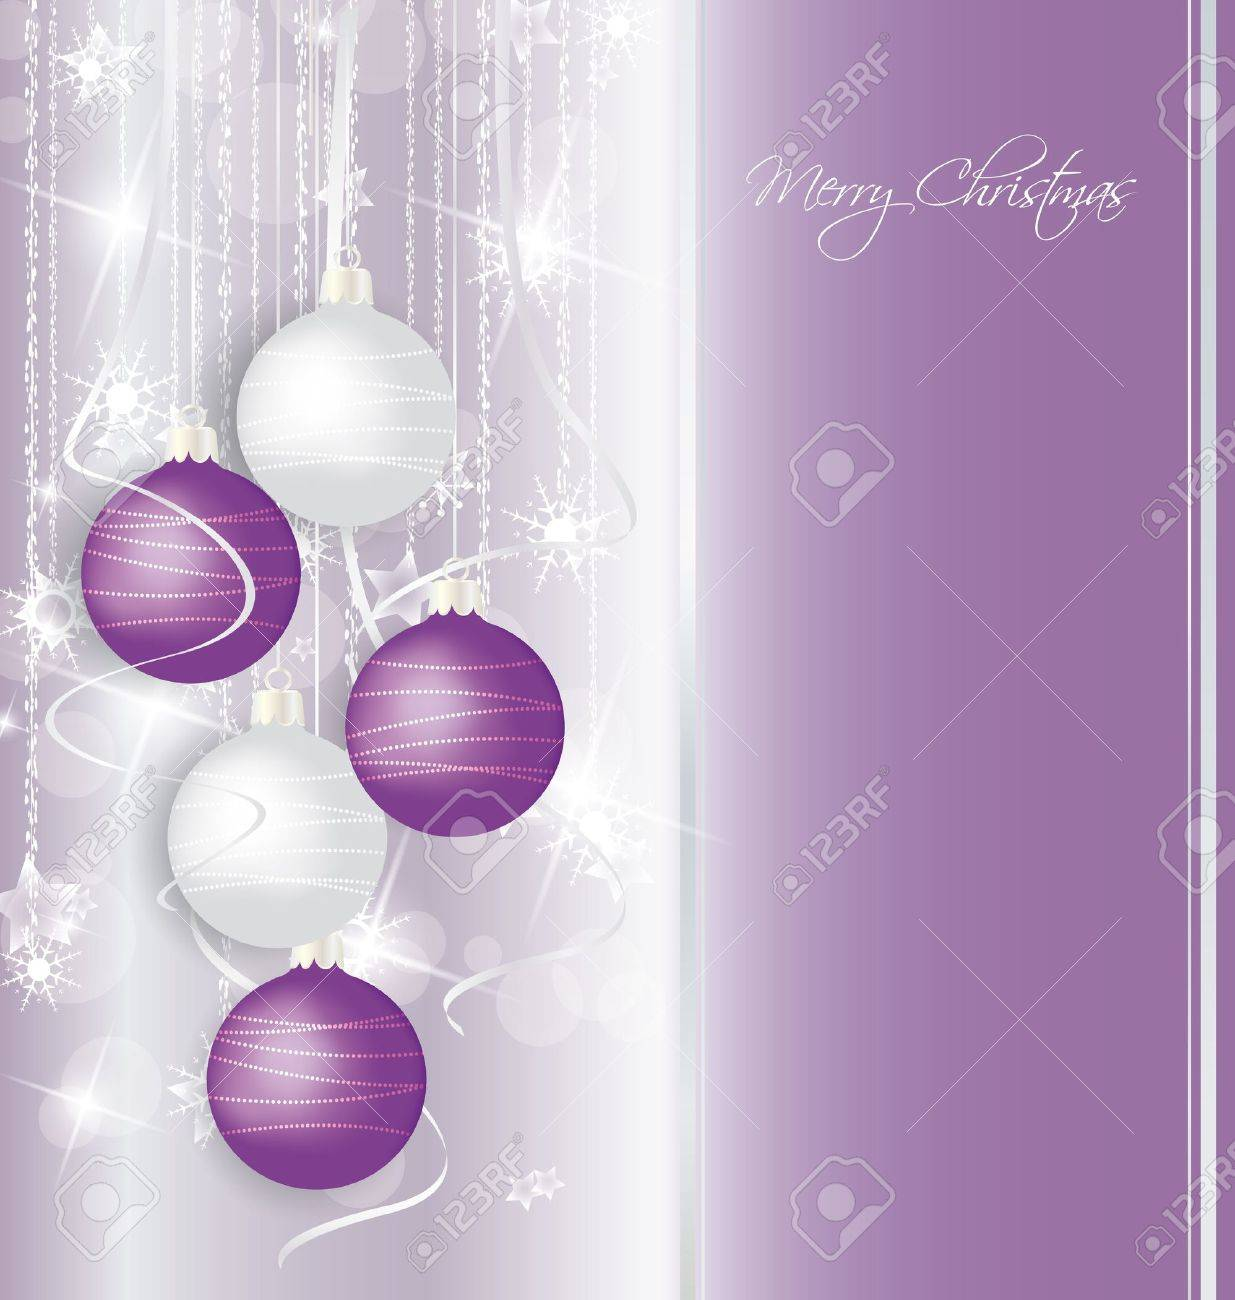 Elegant Christmas Background With Purple And White Balls Royalty ...